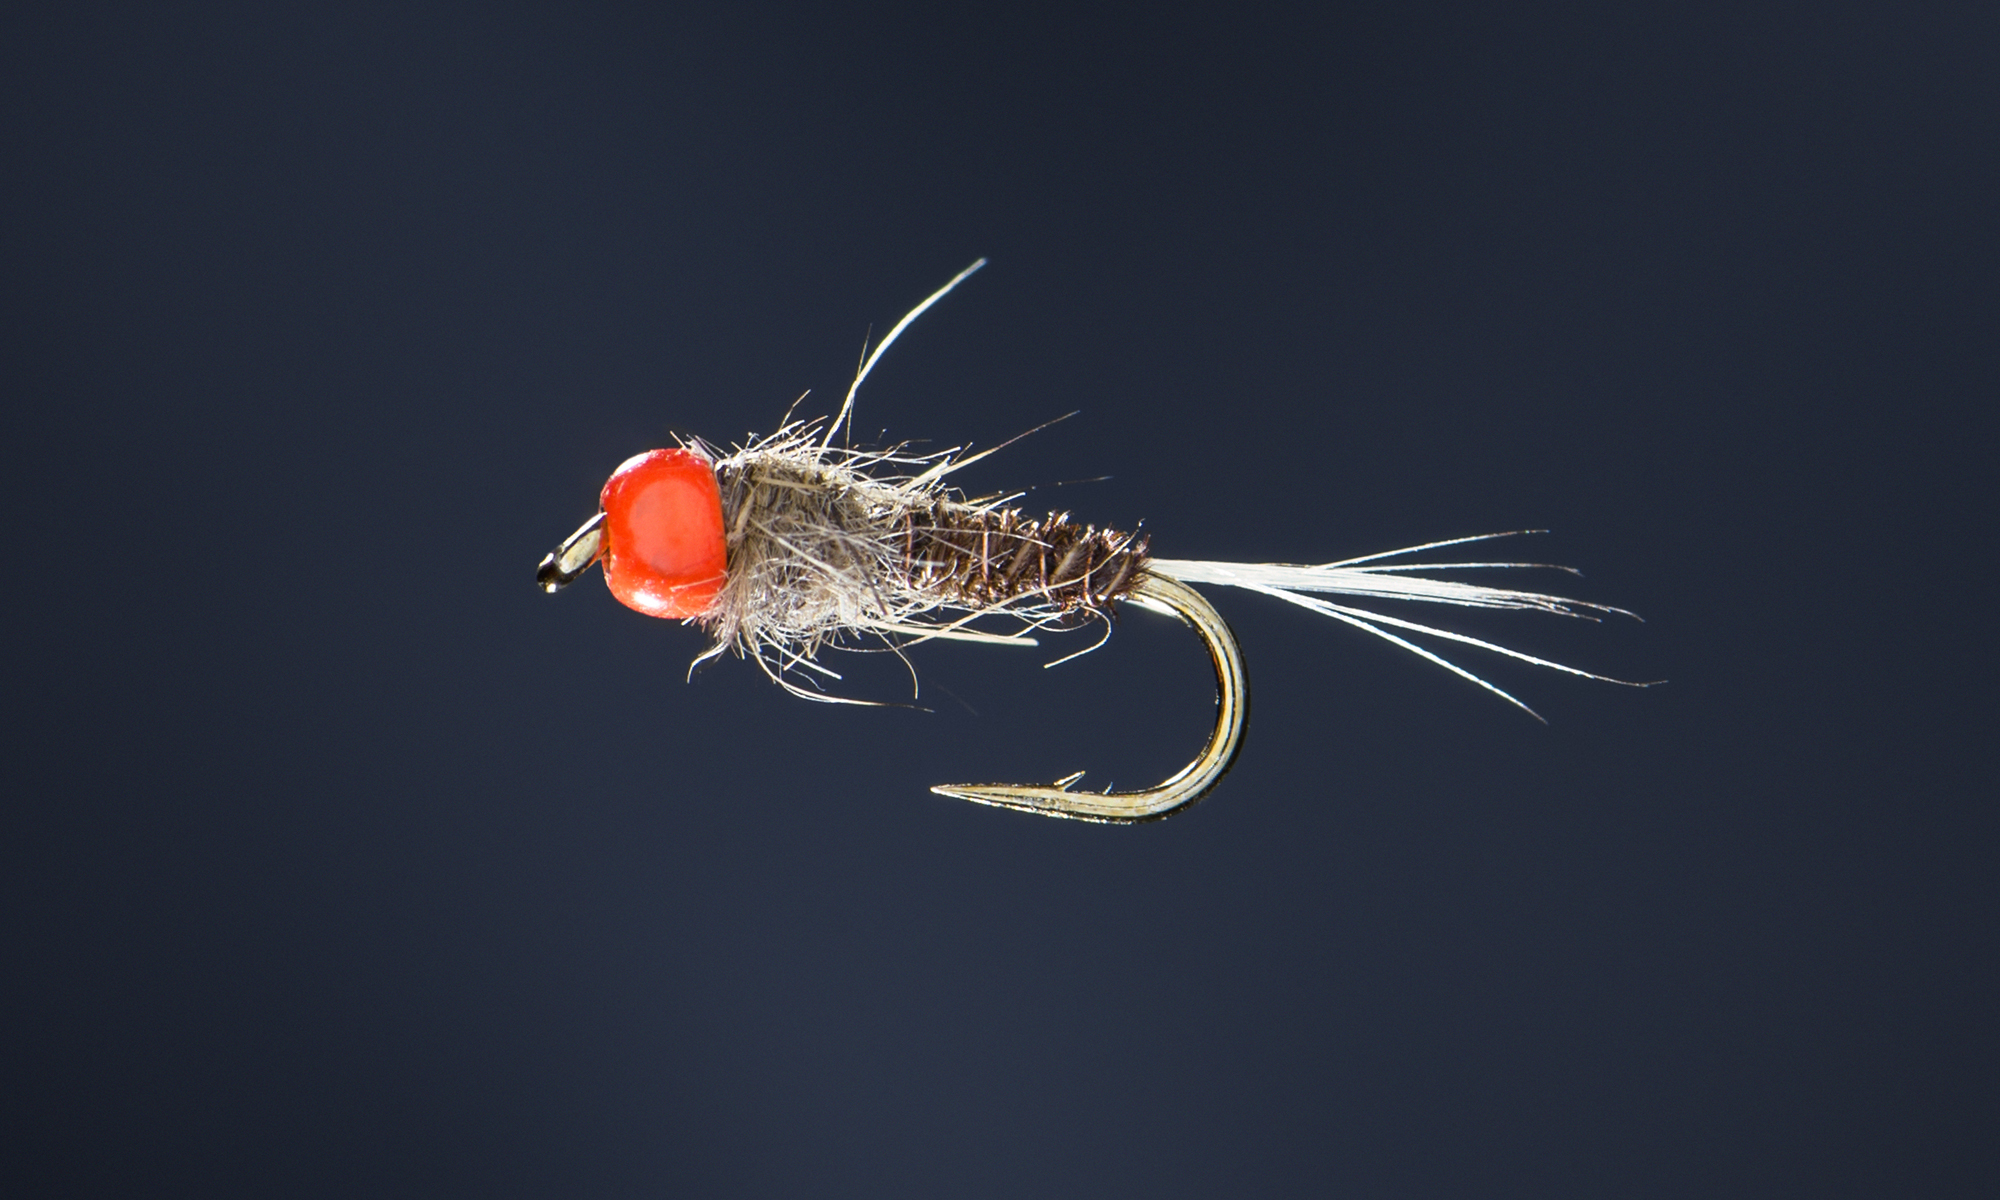 fly fishing fly drawings - photo #26